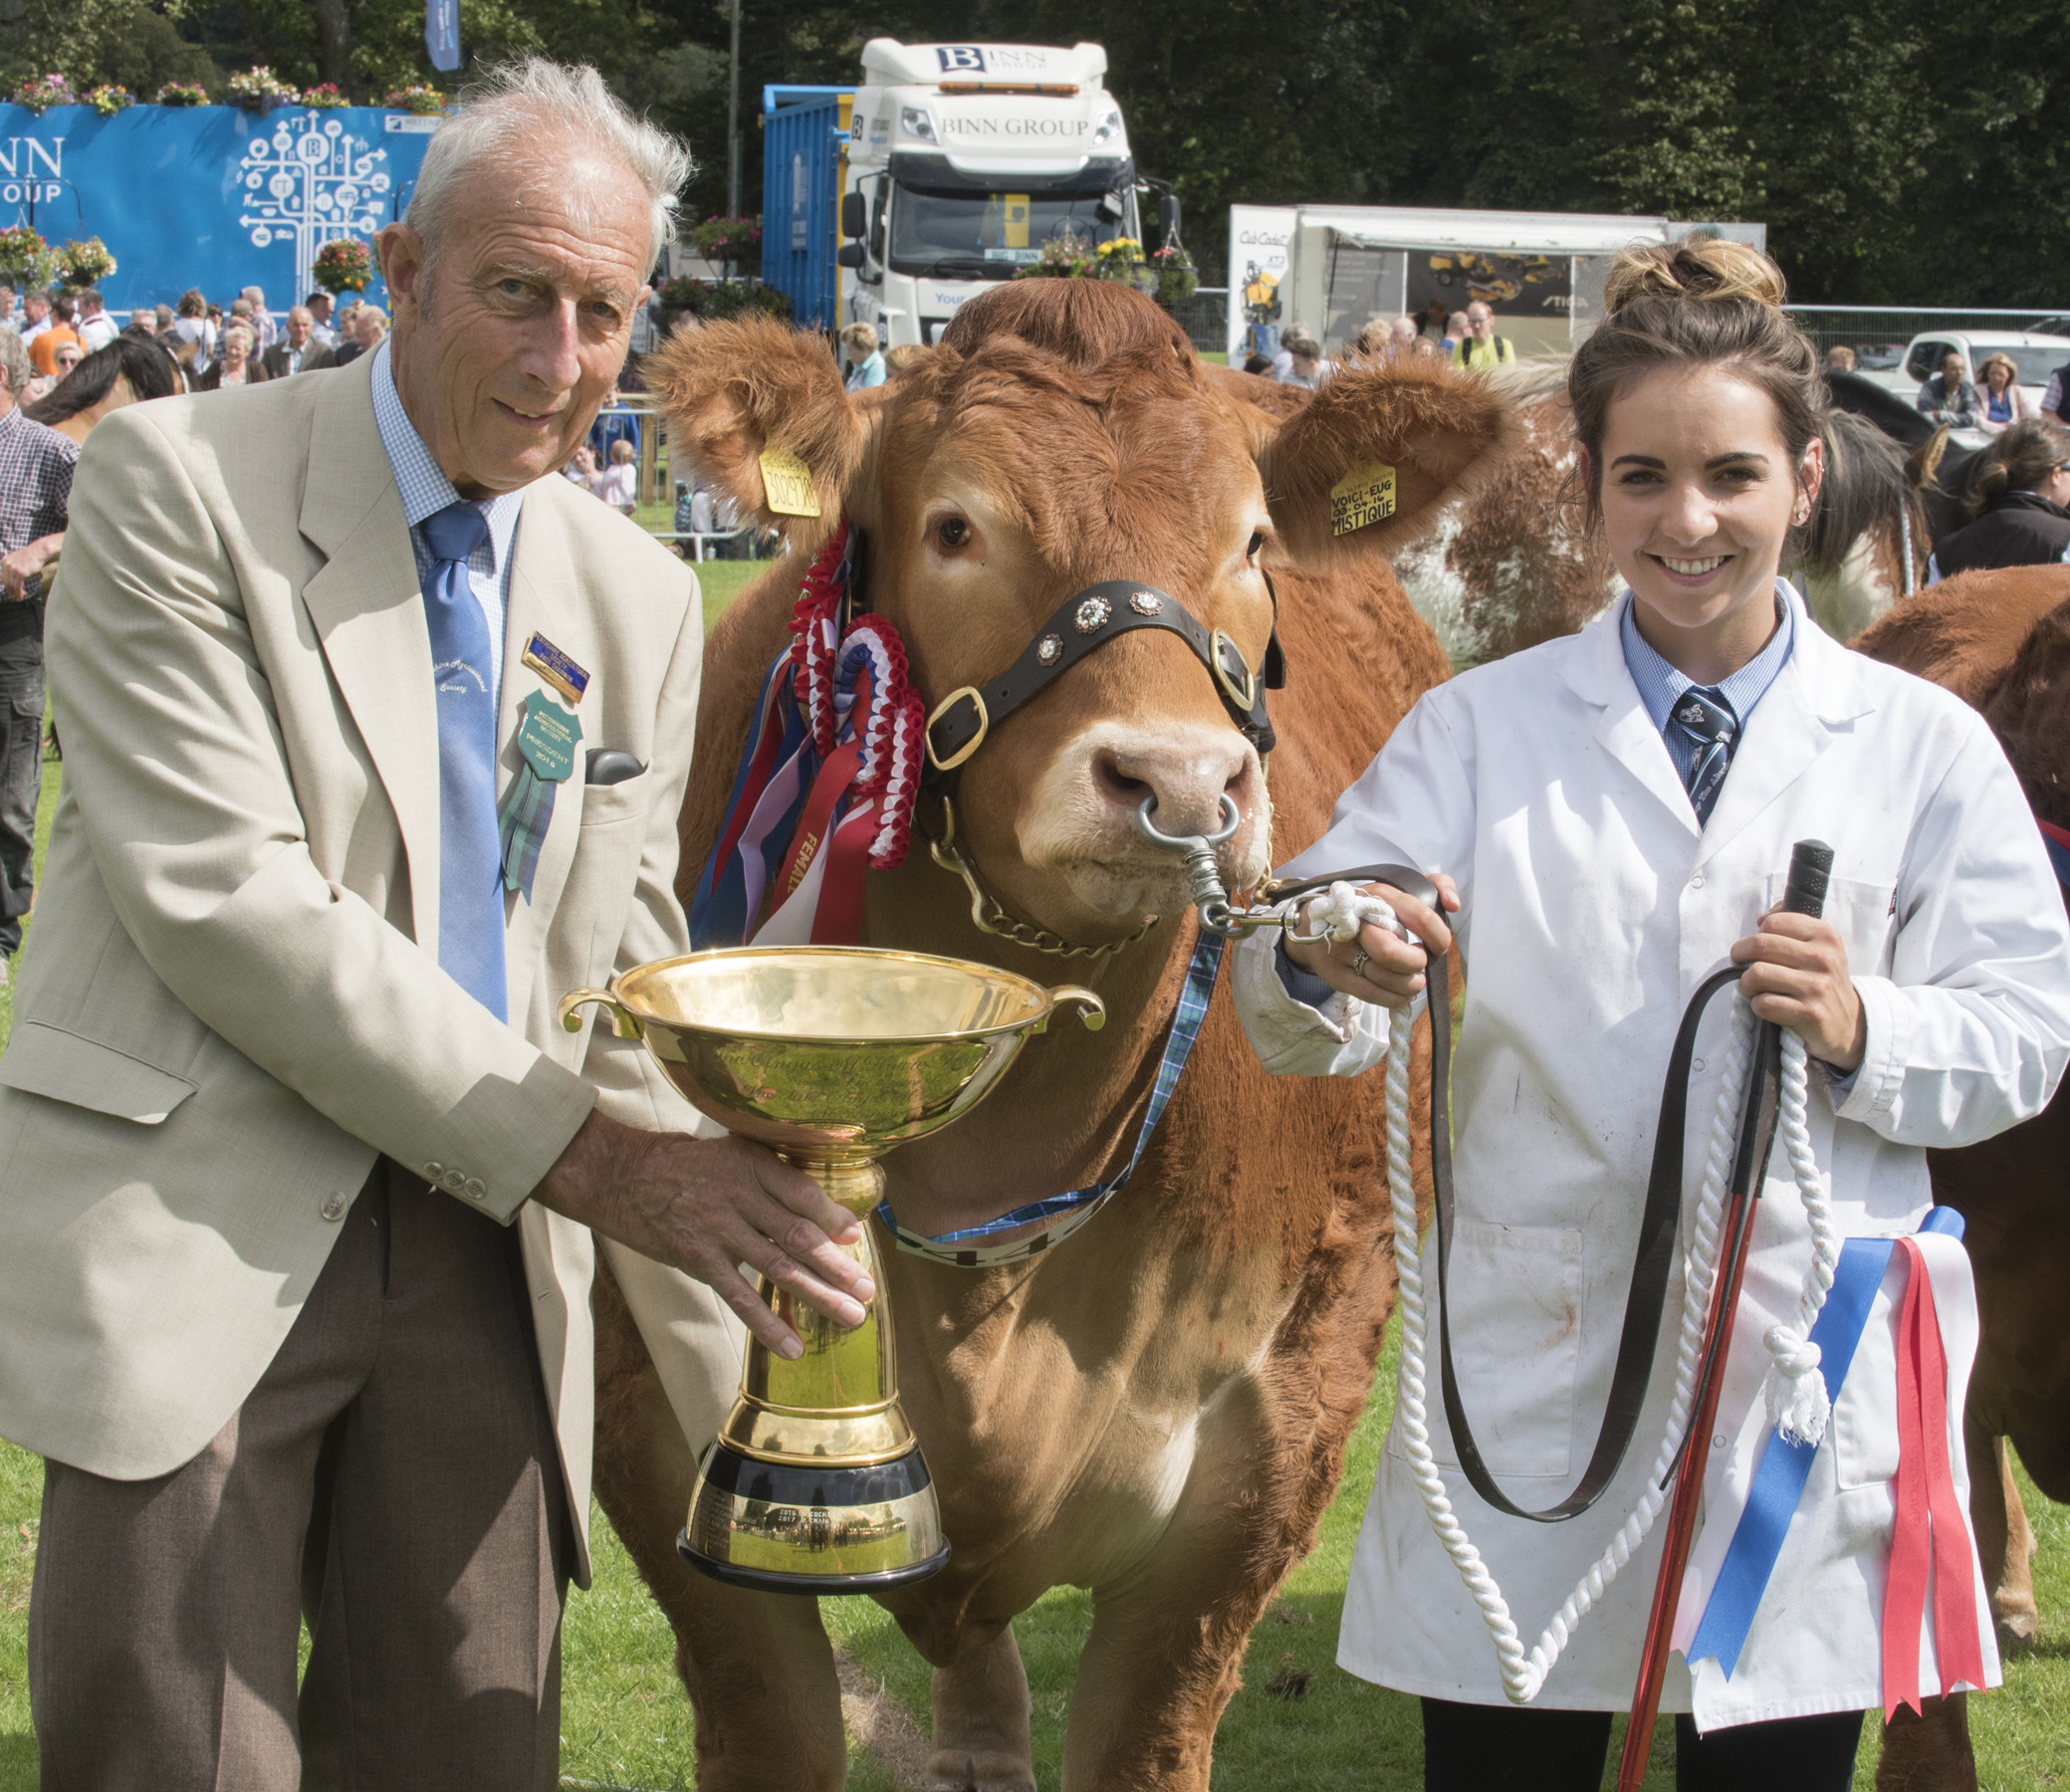 Stephanie Dick won the Angus Howie Trophy for the event's champion of champions.